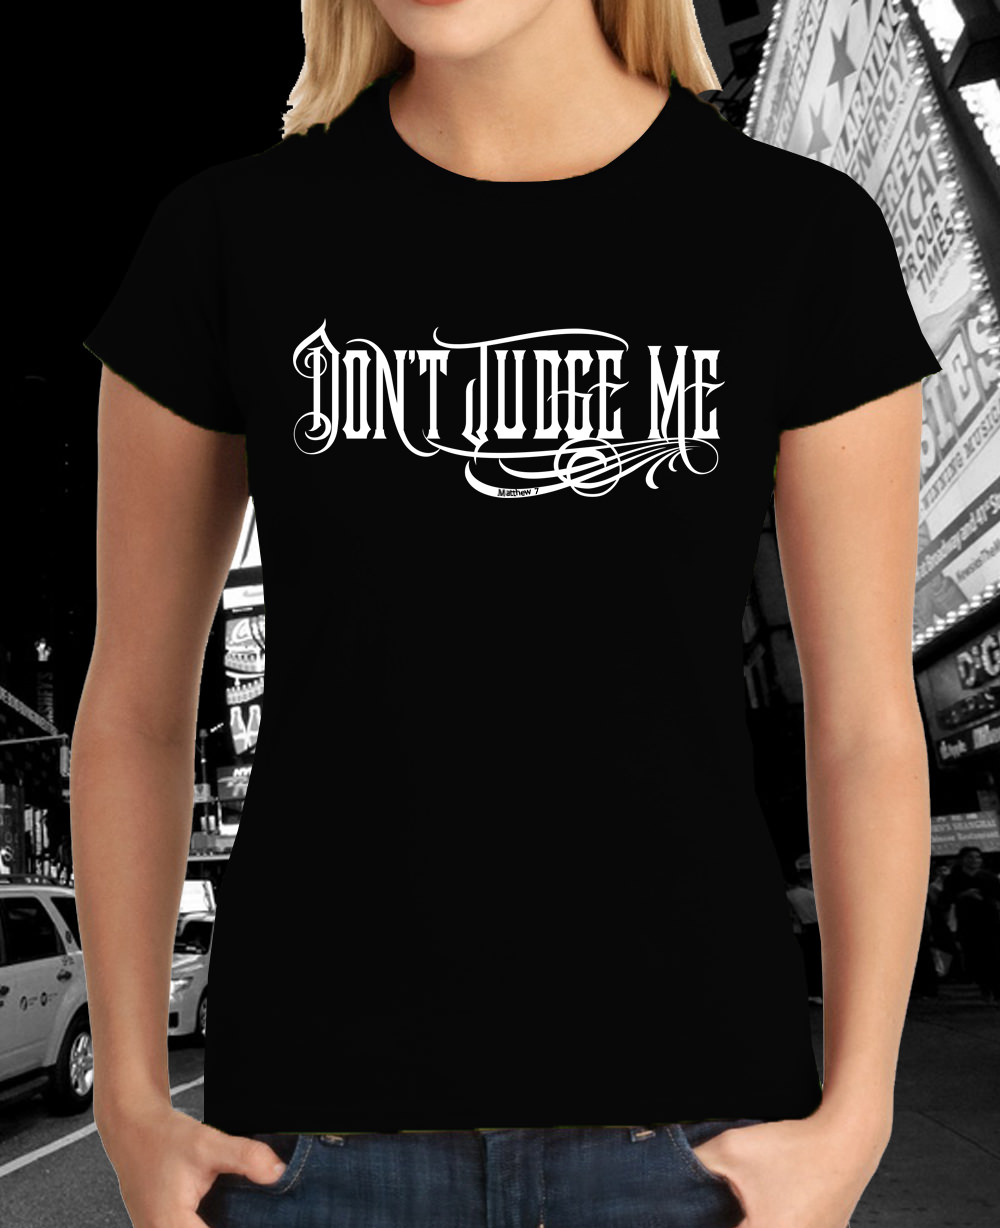 dont_judge_me_original_logo_tshirt_black_ladies_mini